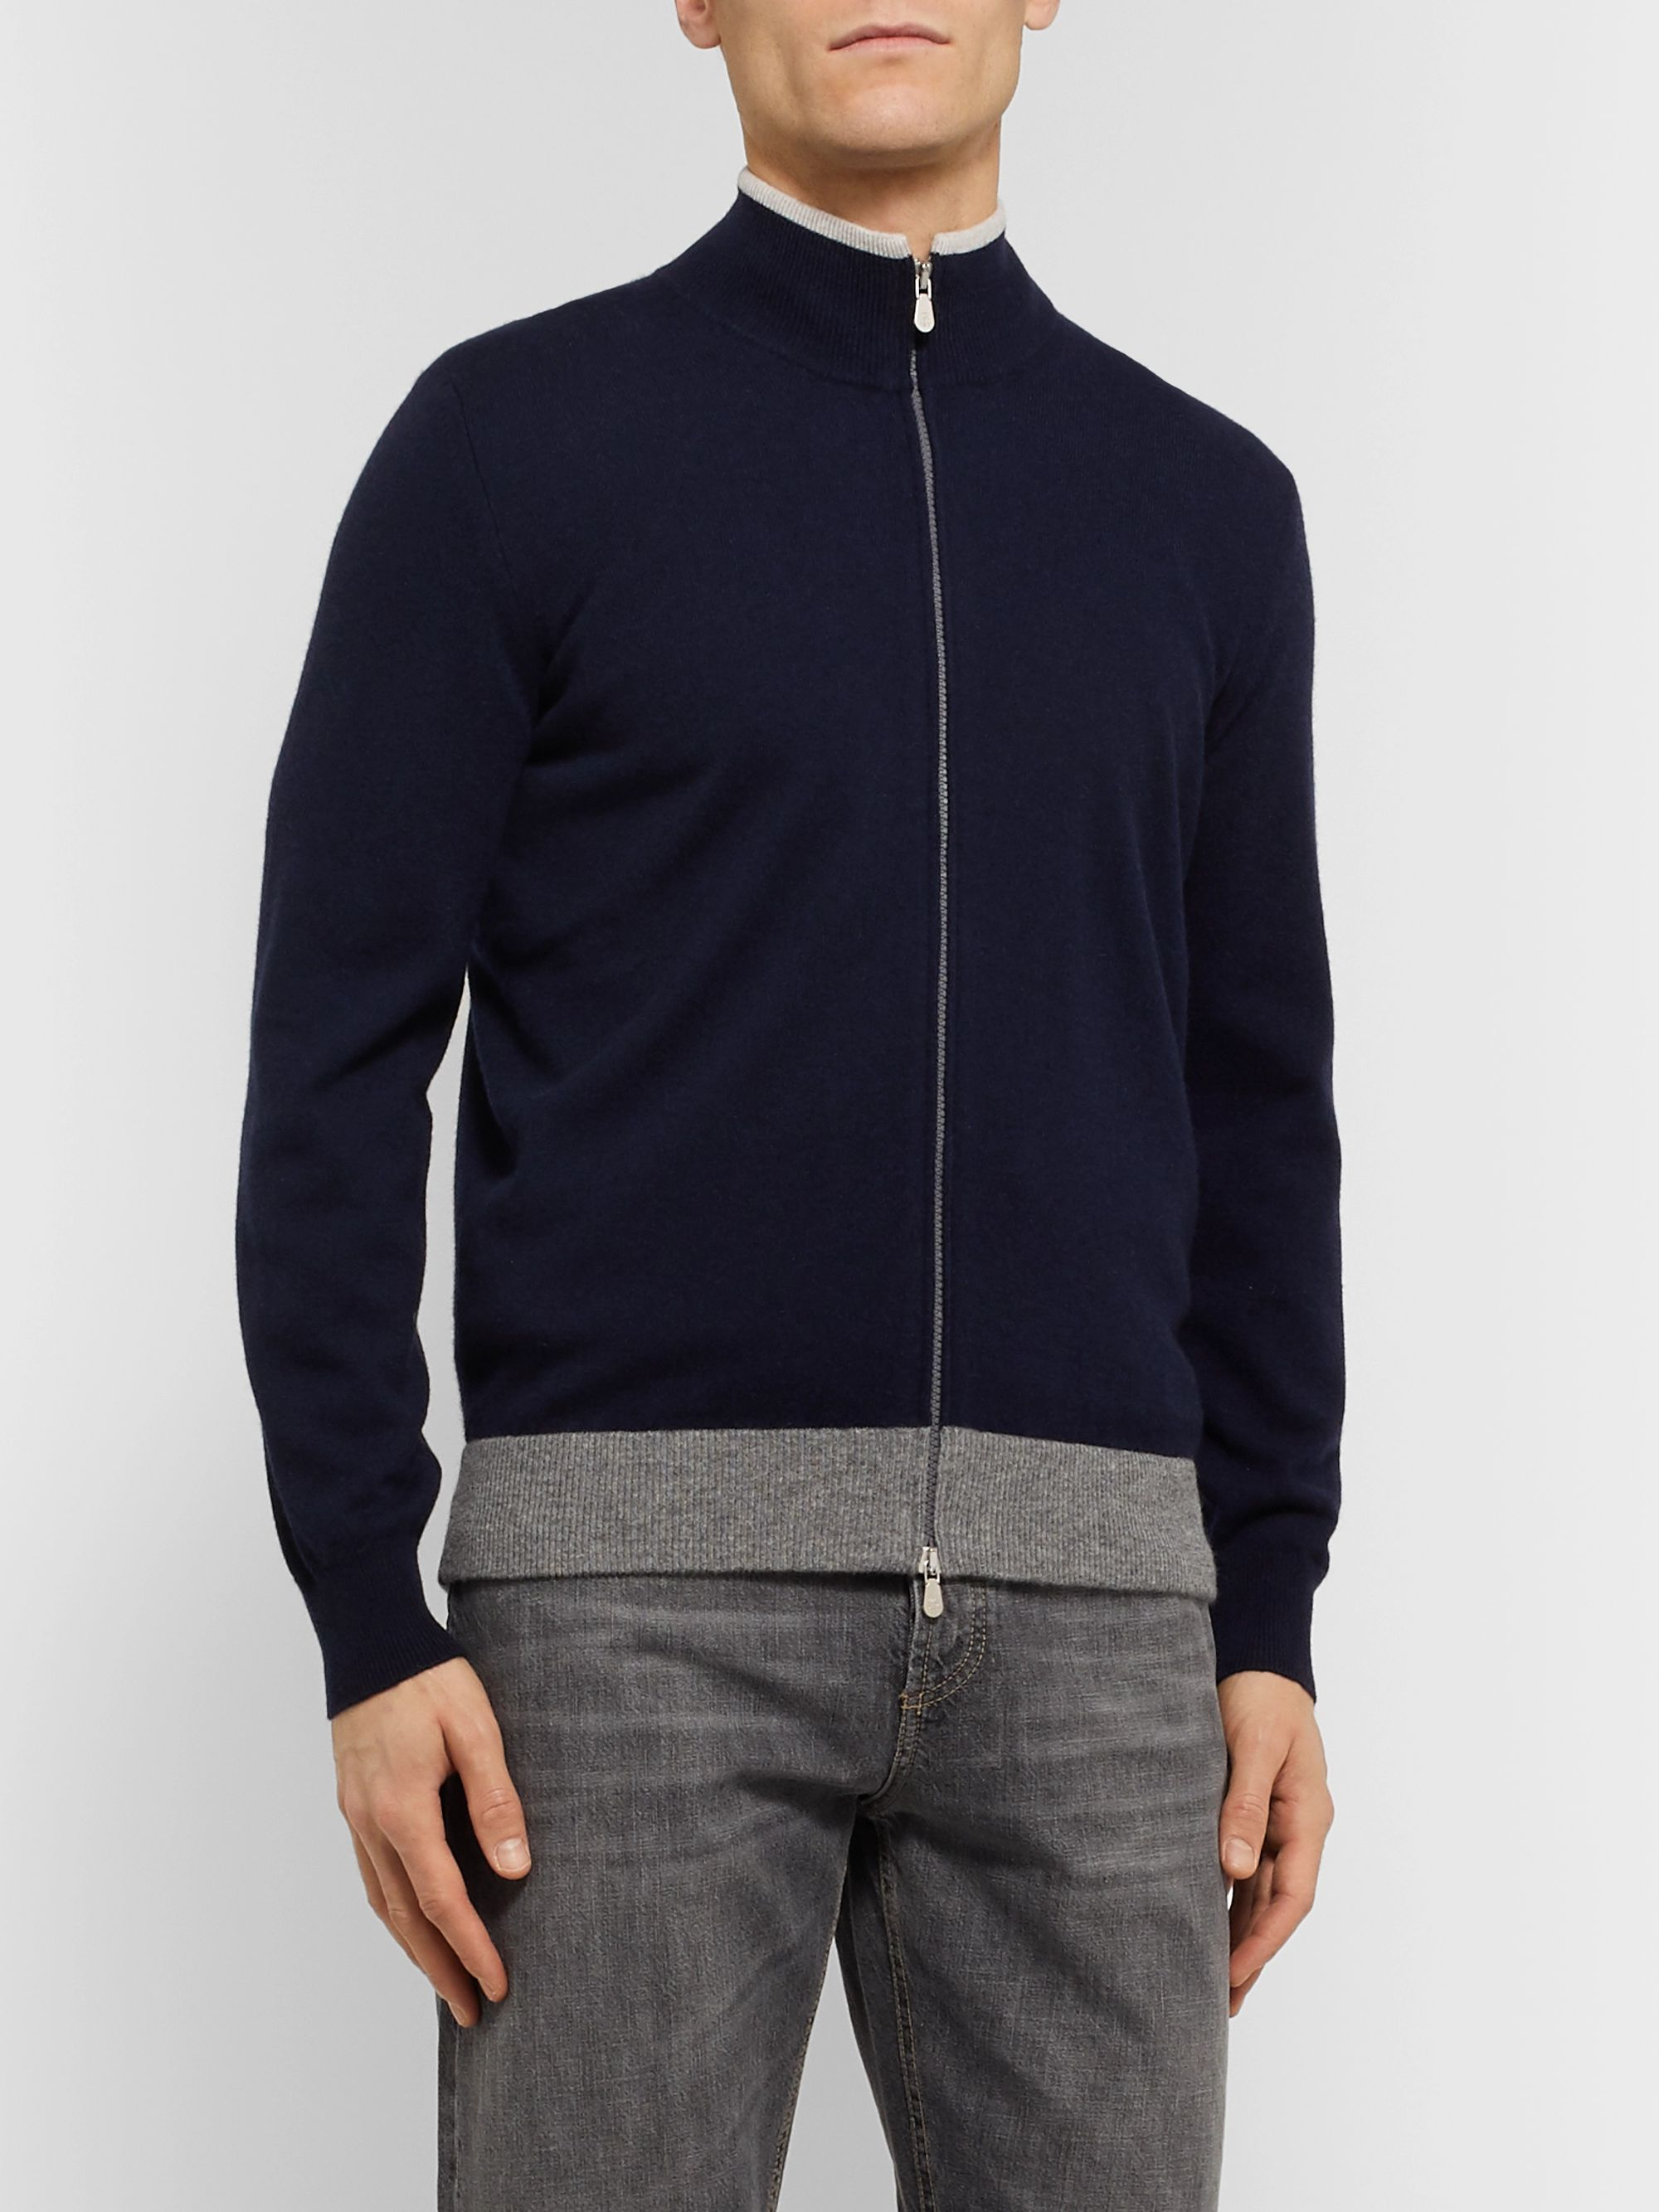 Brunello Cucinelli Contrast-Tipped Cashmere Zip-Up Sweater